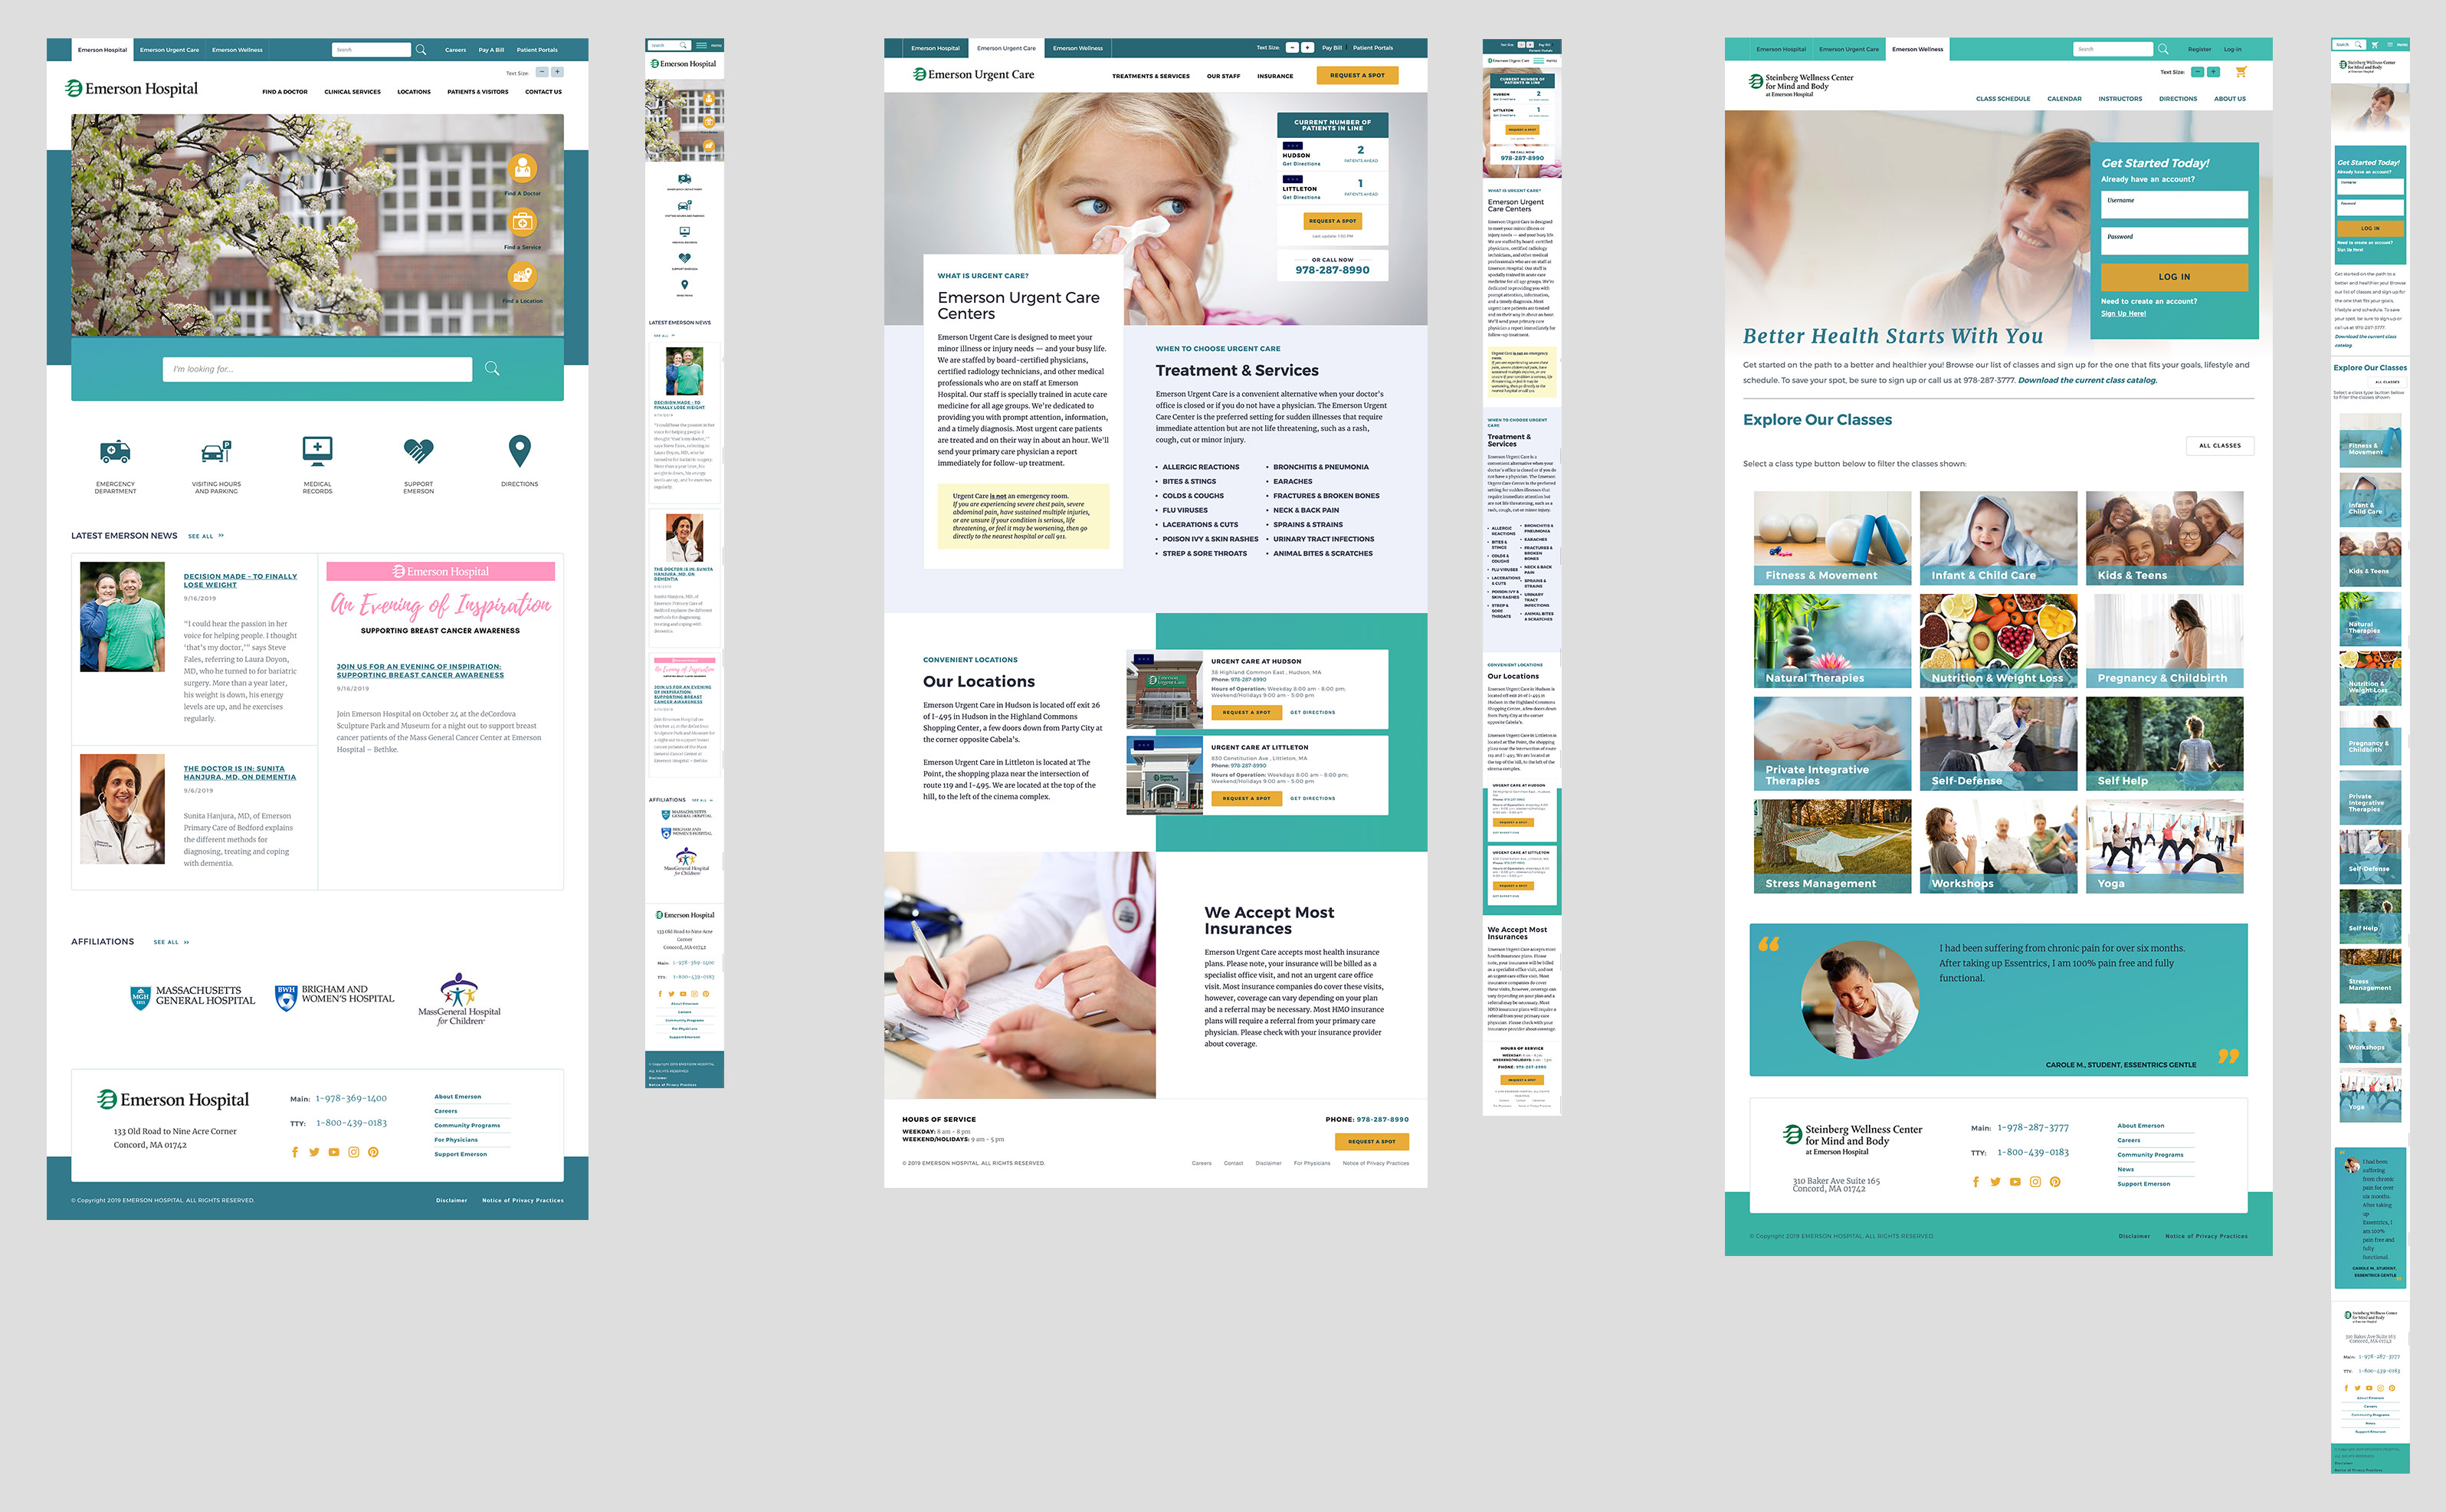 Homepage designs and their mobile views for the Emerson Hospital main site, Emerson Wellness Center and Emerson Urgent Care.